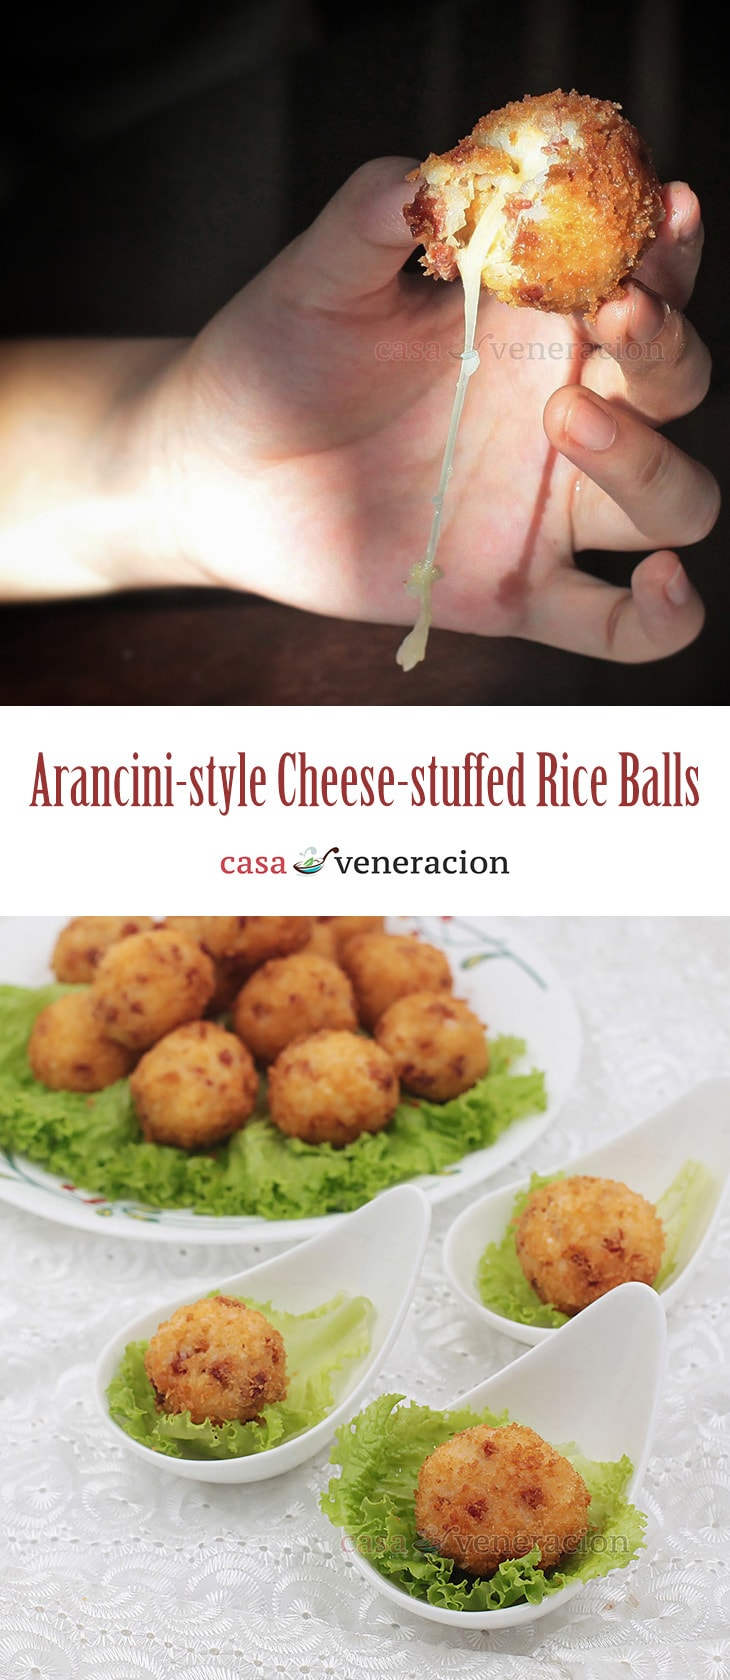 My arancini recipe: day-old rice is mixed with chopped chorizo, egg and Parmesan, rolled and stuffed with cheese, dredged in bread crumbs and fried.